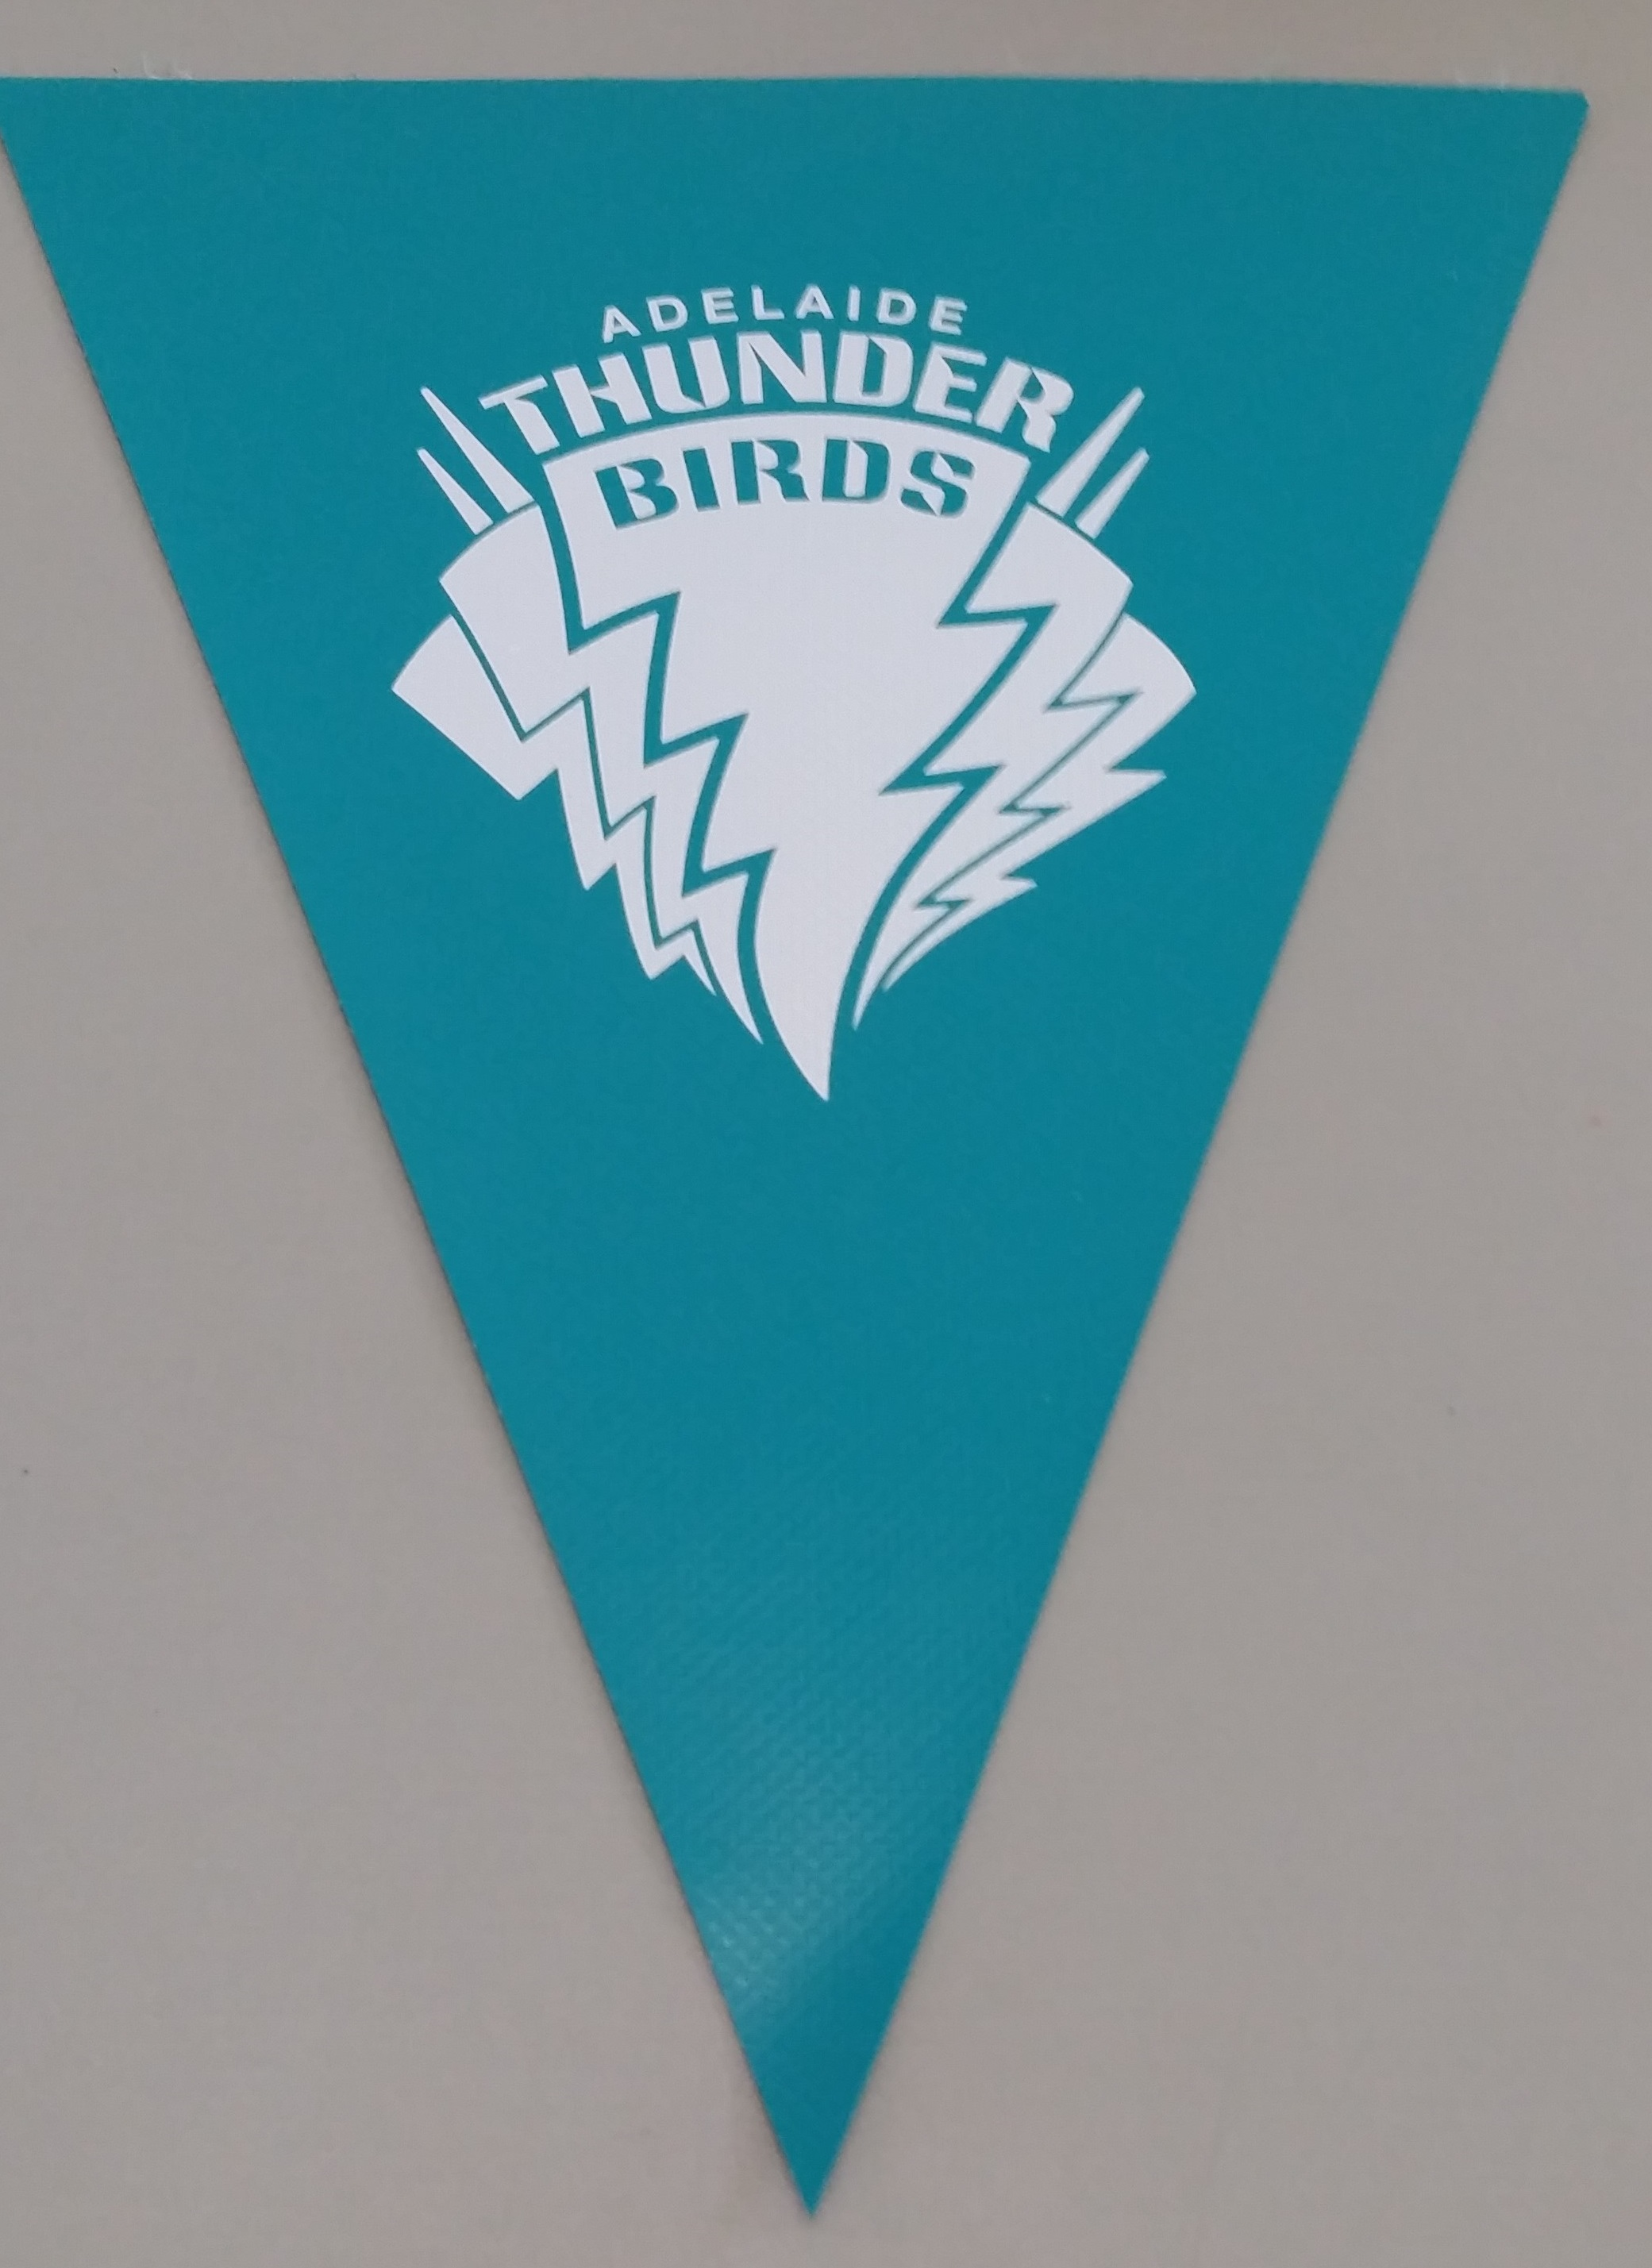 Thunderbirds (teal)